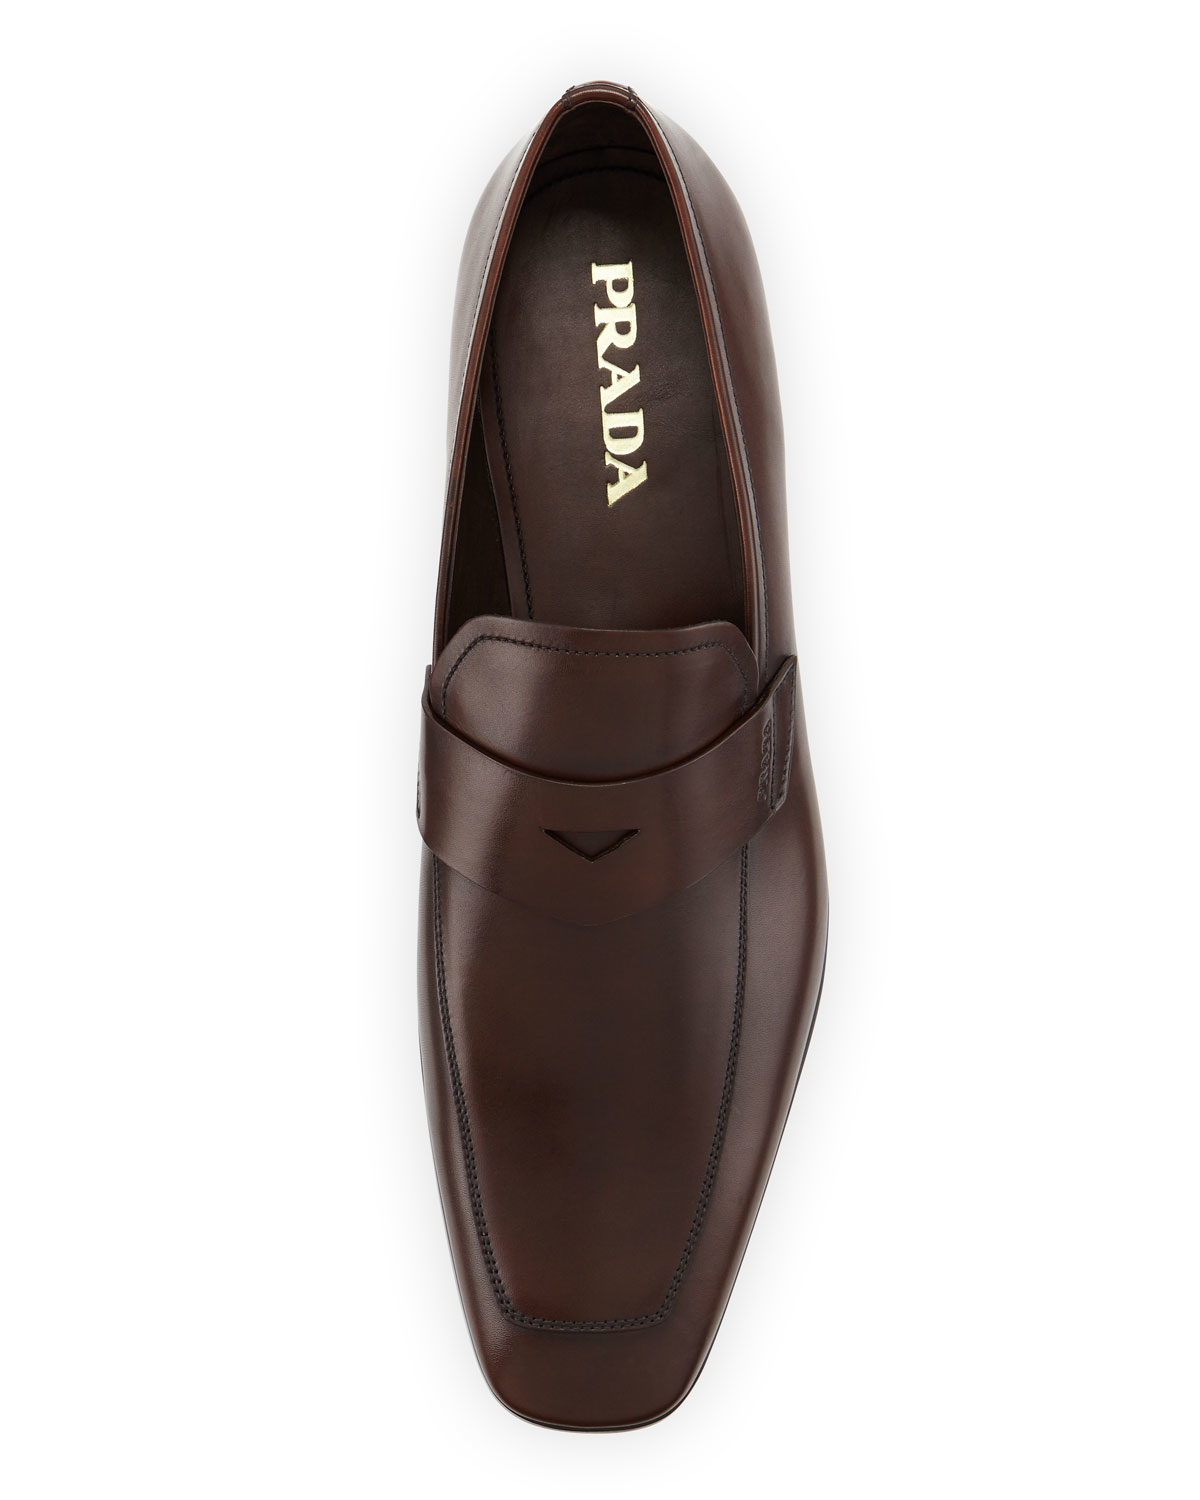 Lyst Prada Square Toe Leather Penny Loafer In Brown For Men